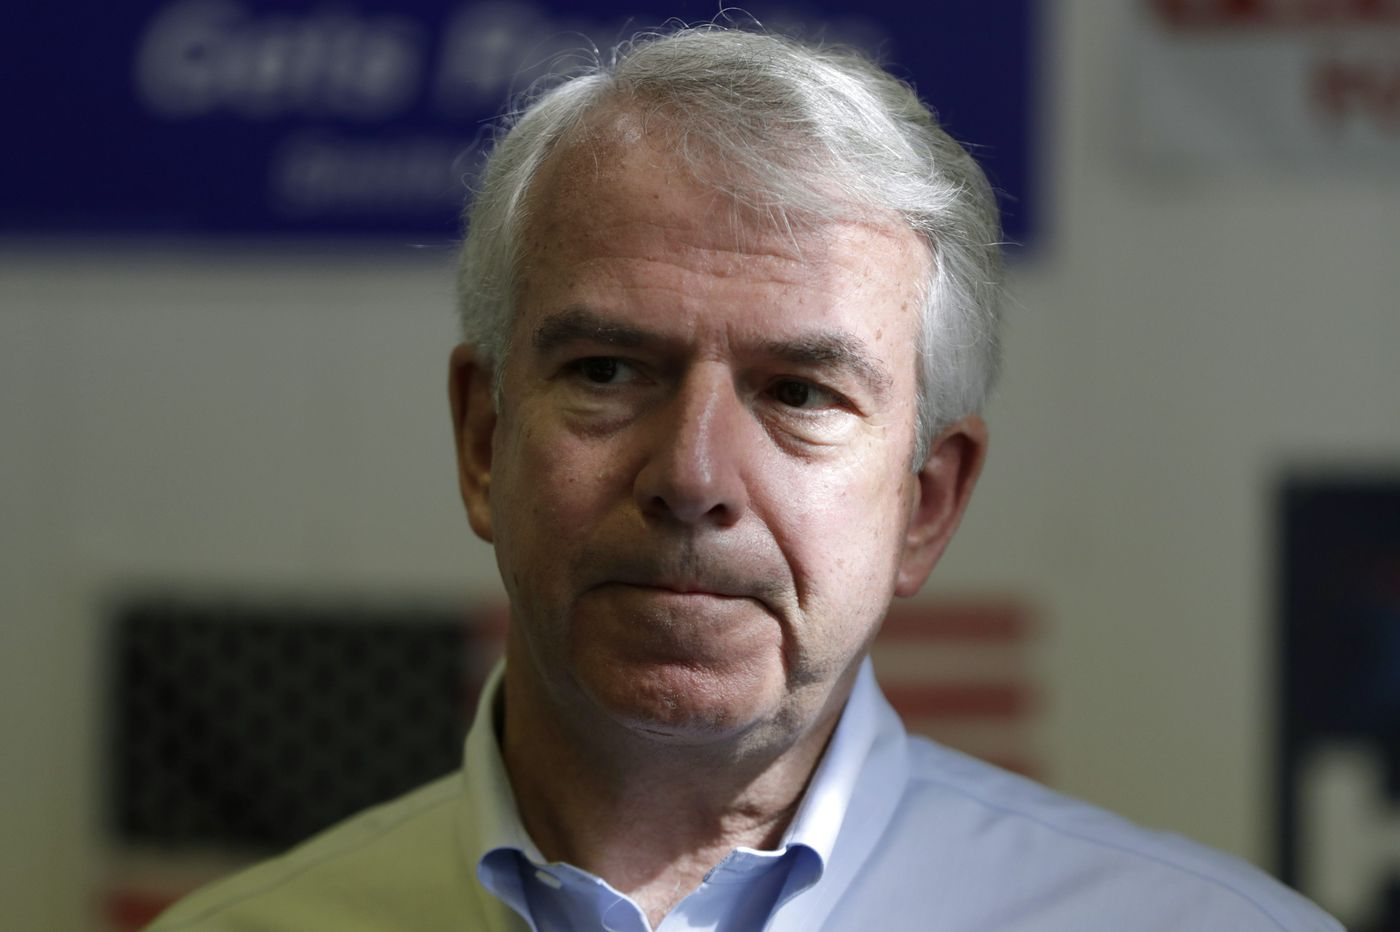 Bob Hugin is the Republican New Jersey needs | Opinion